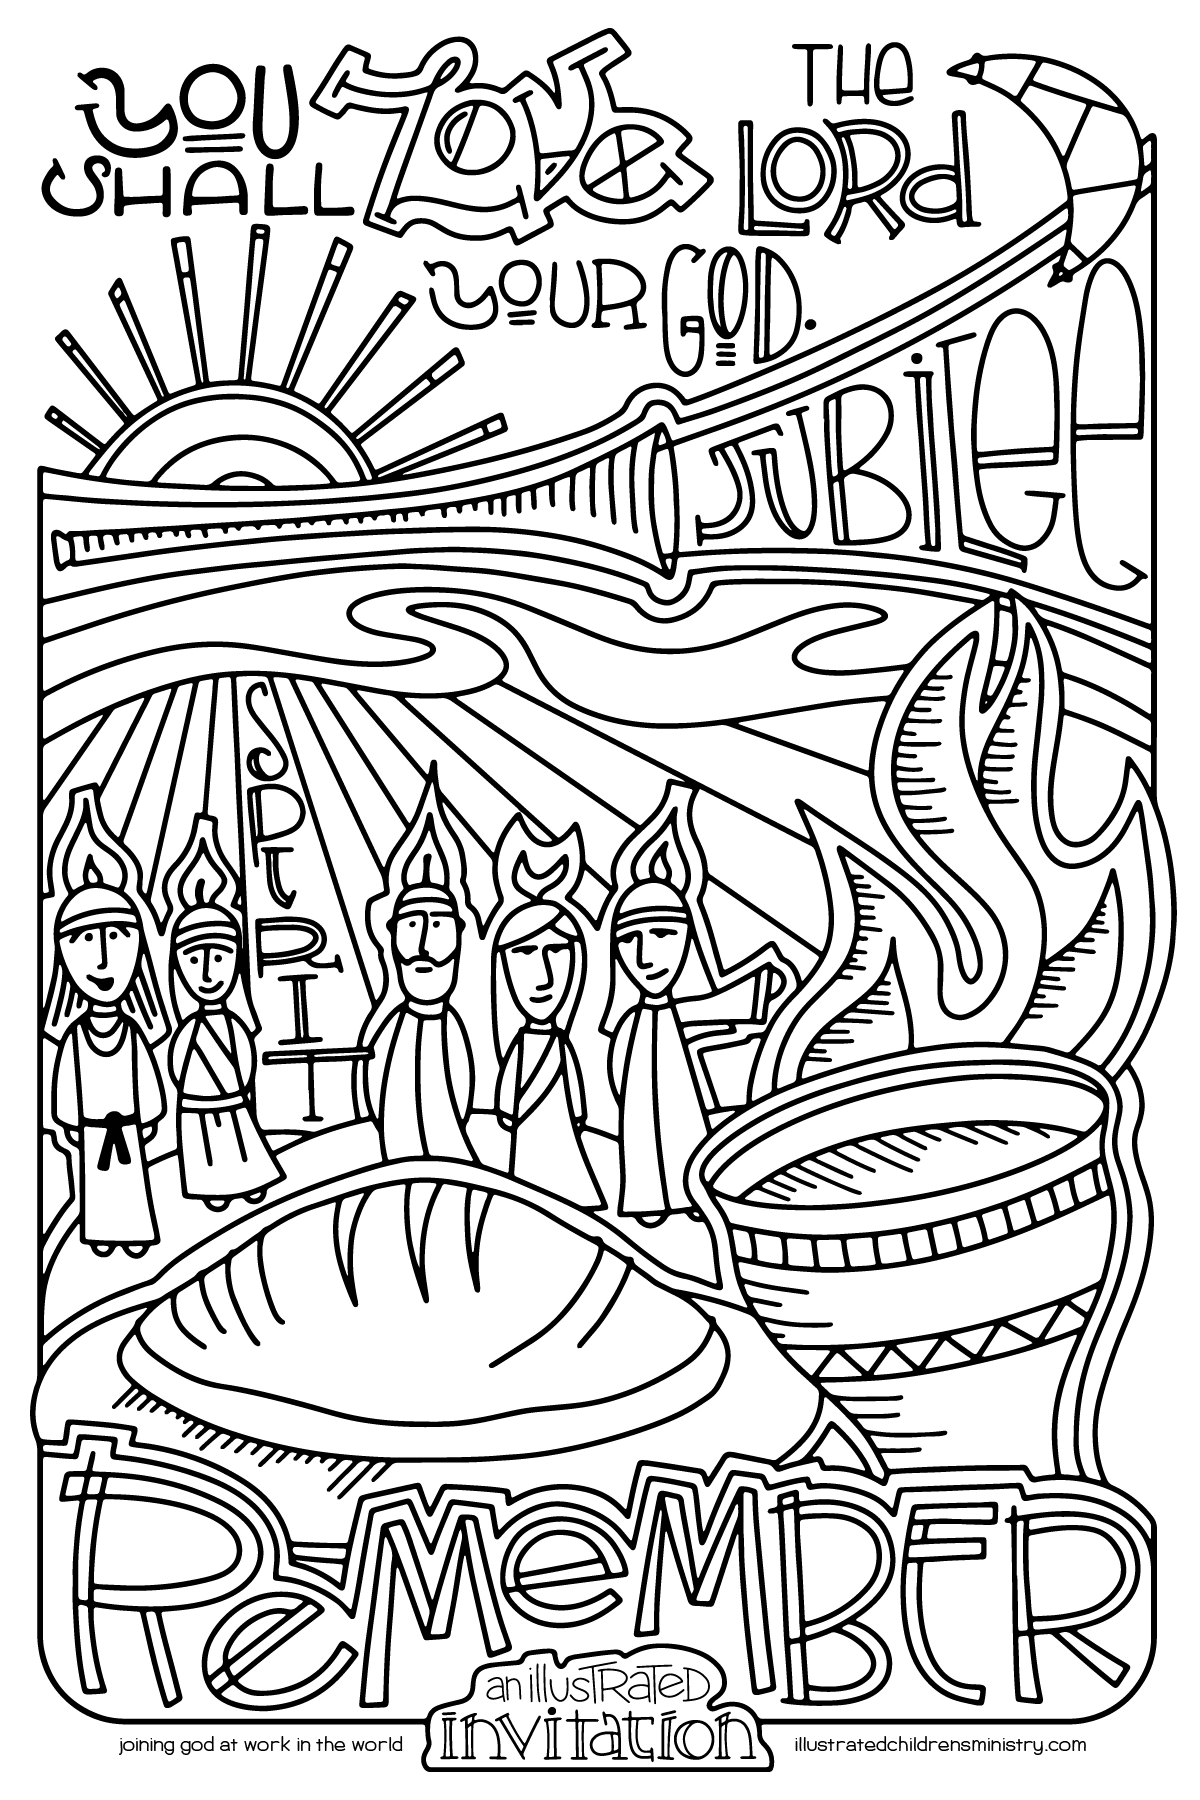 An Illustrated Invitation coloring page 3: Accepting God's Invitation